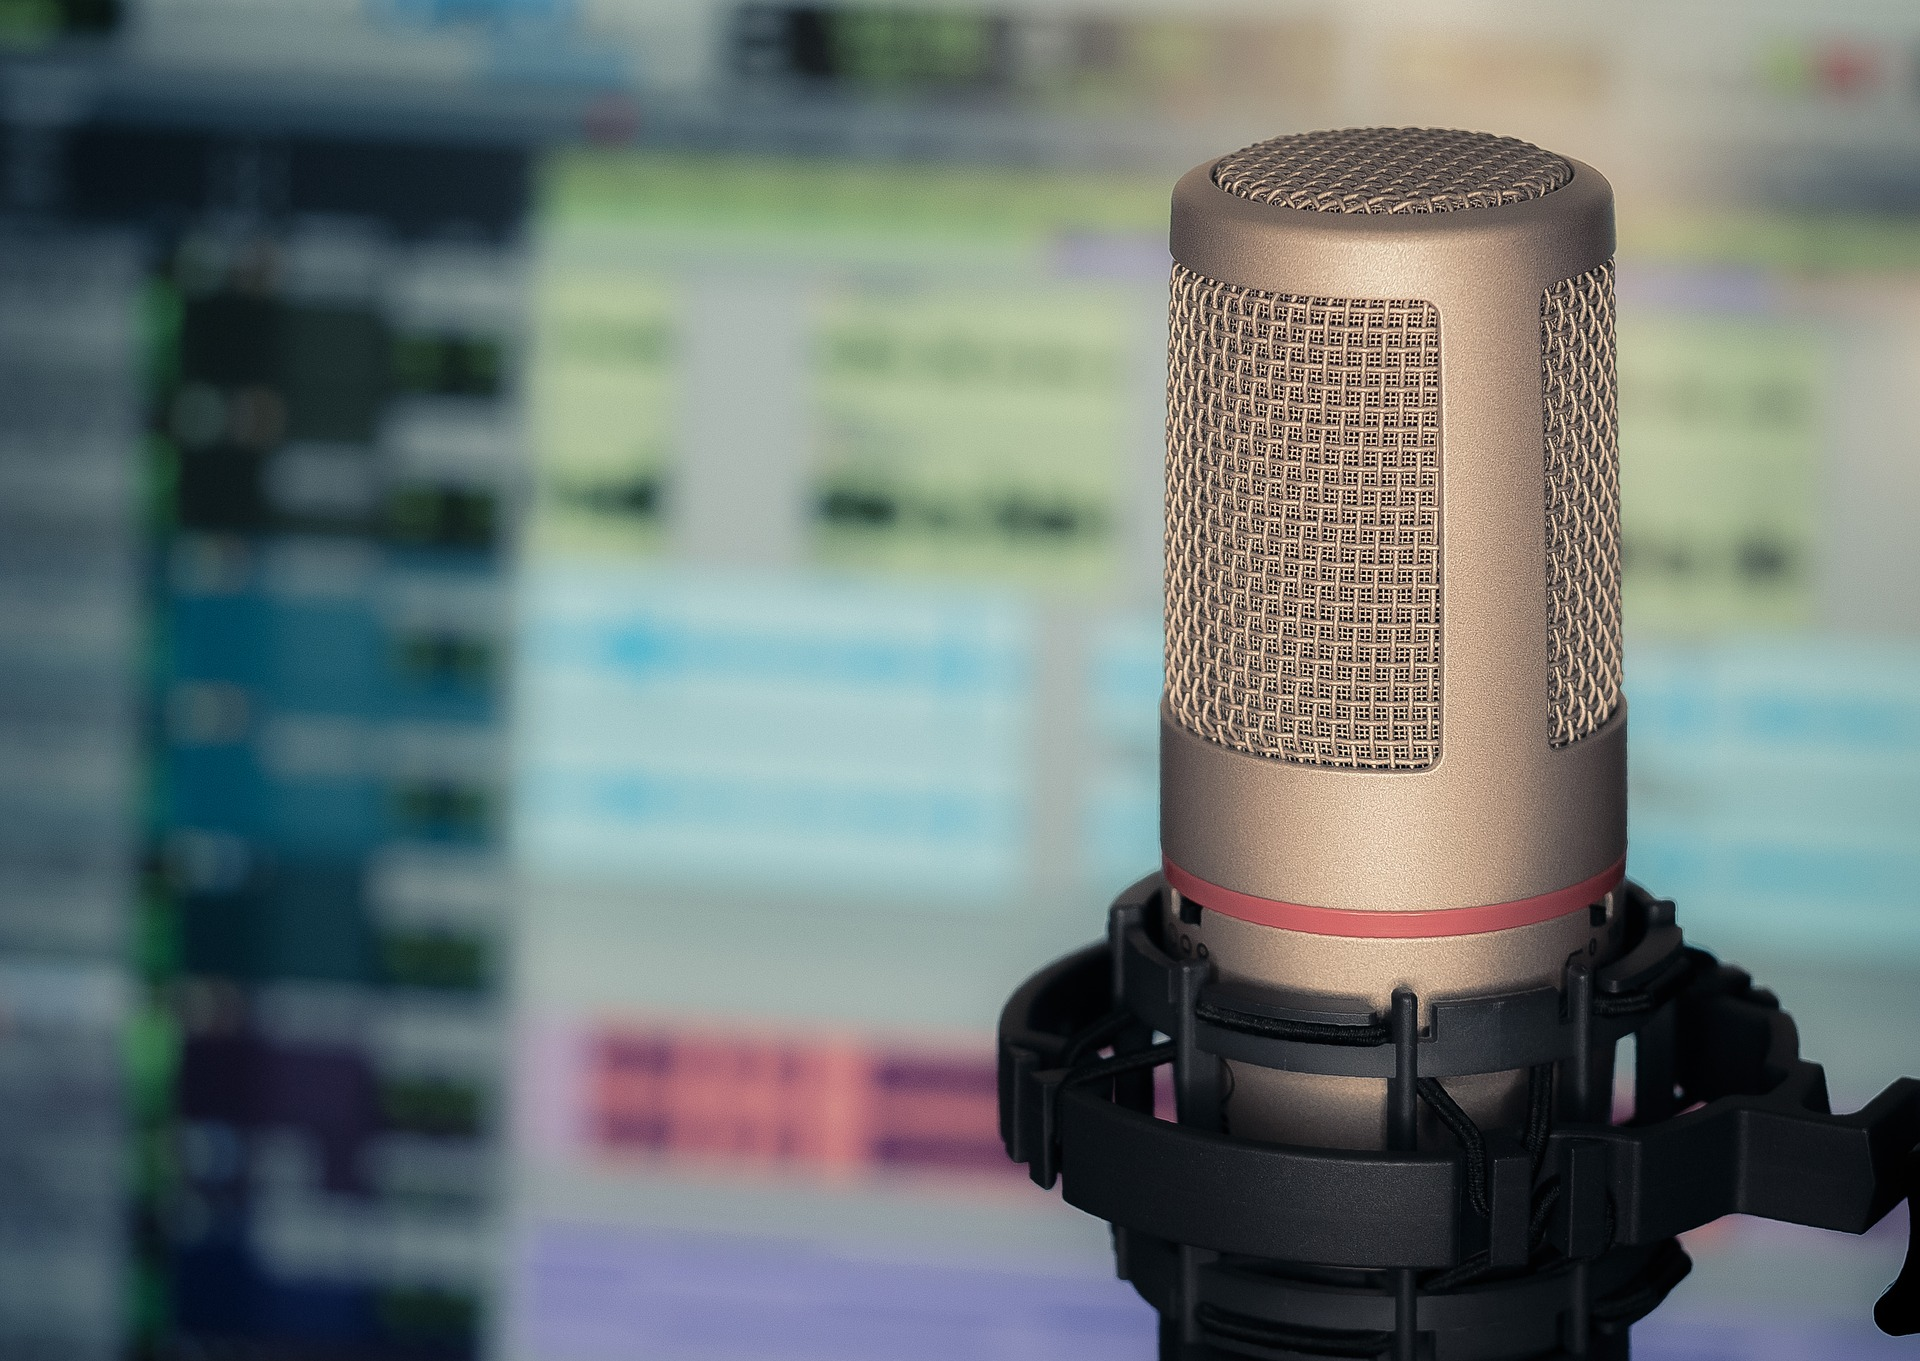 Podcast Microphone and Editing